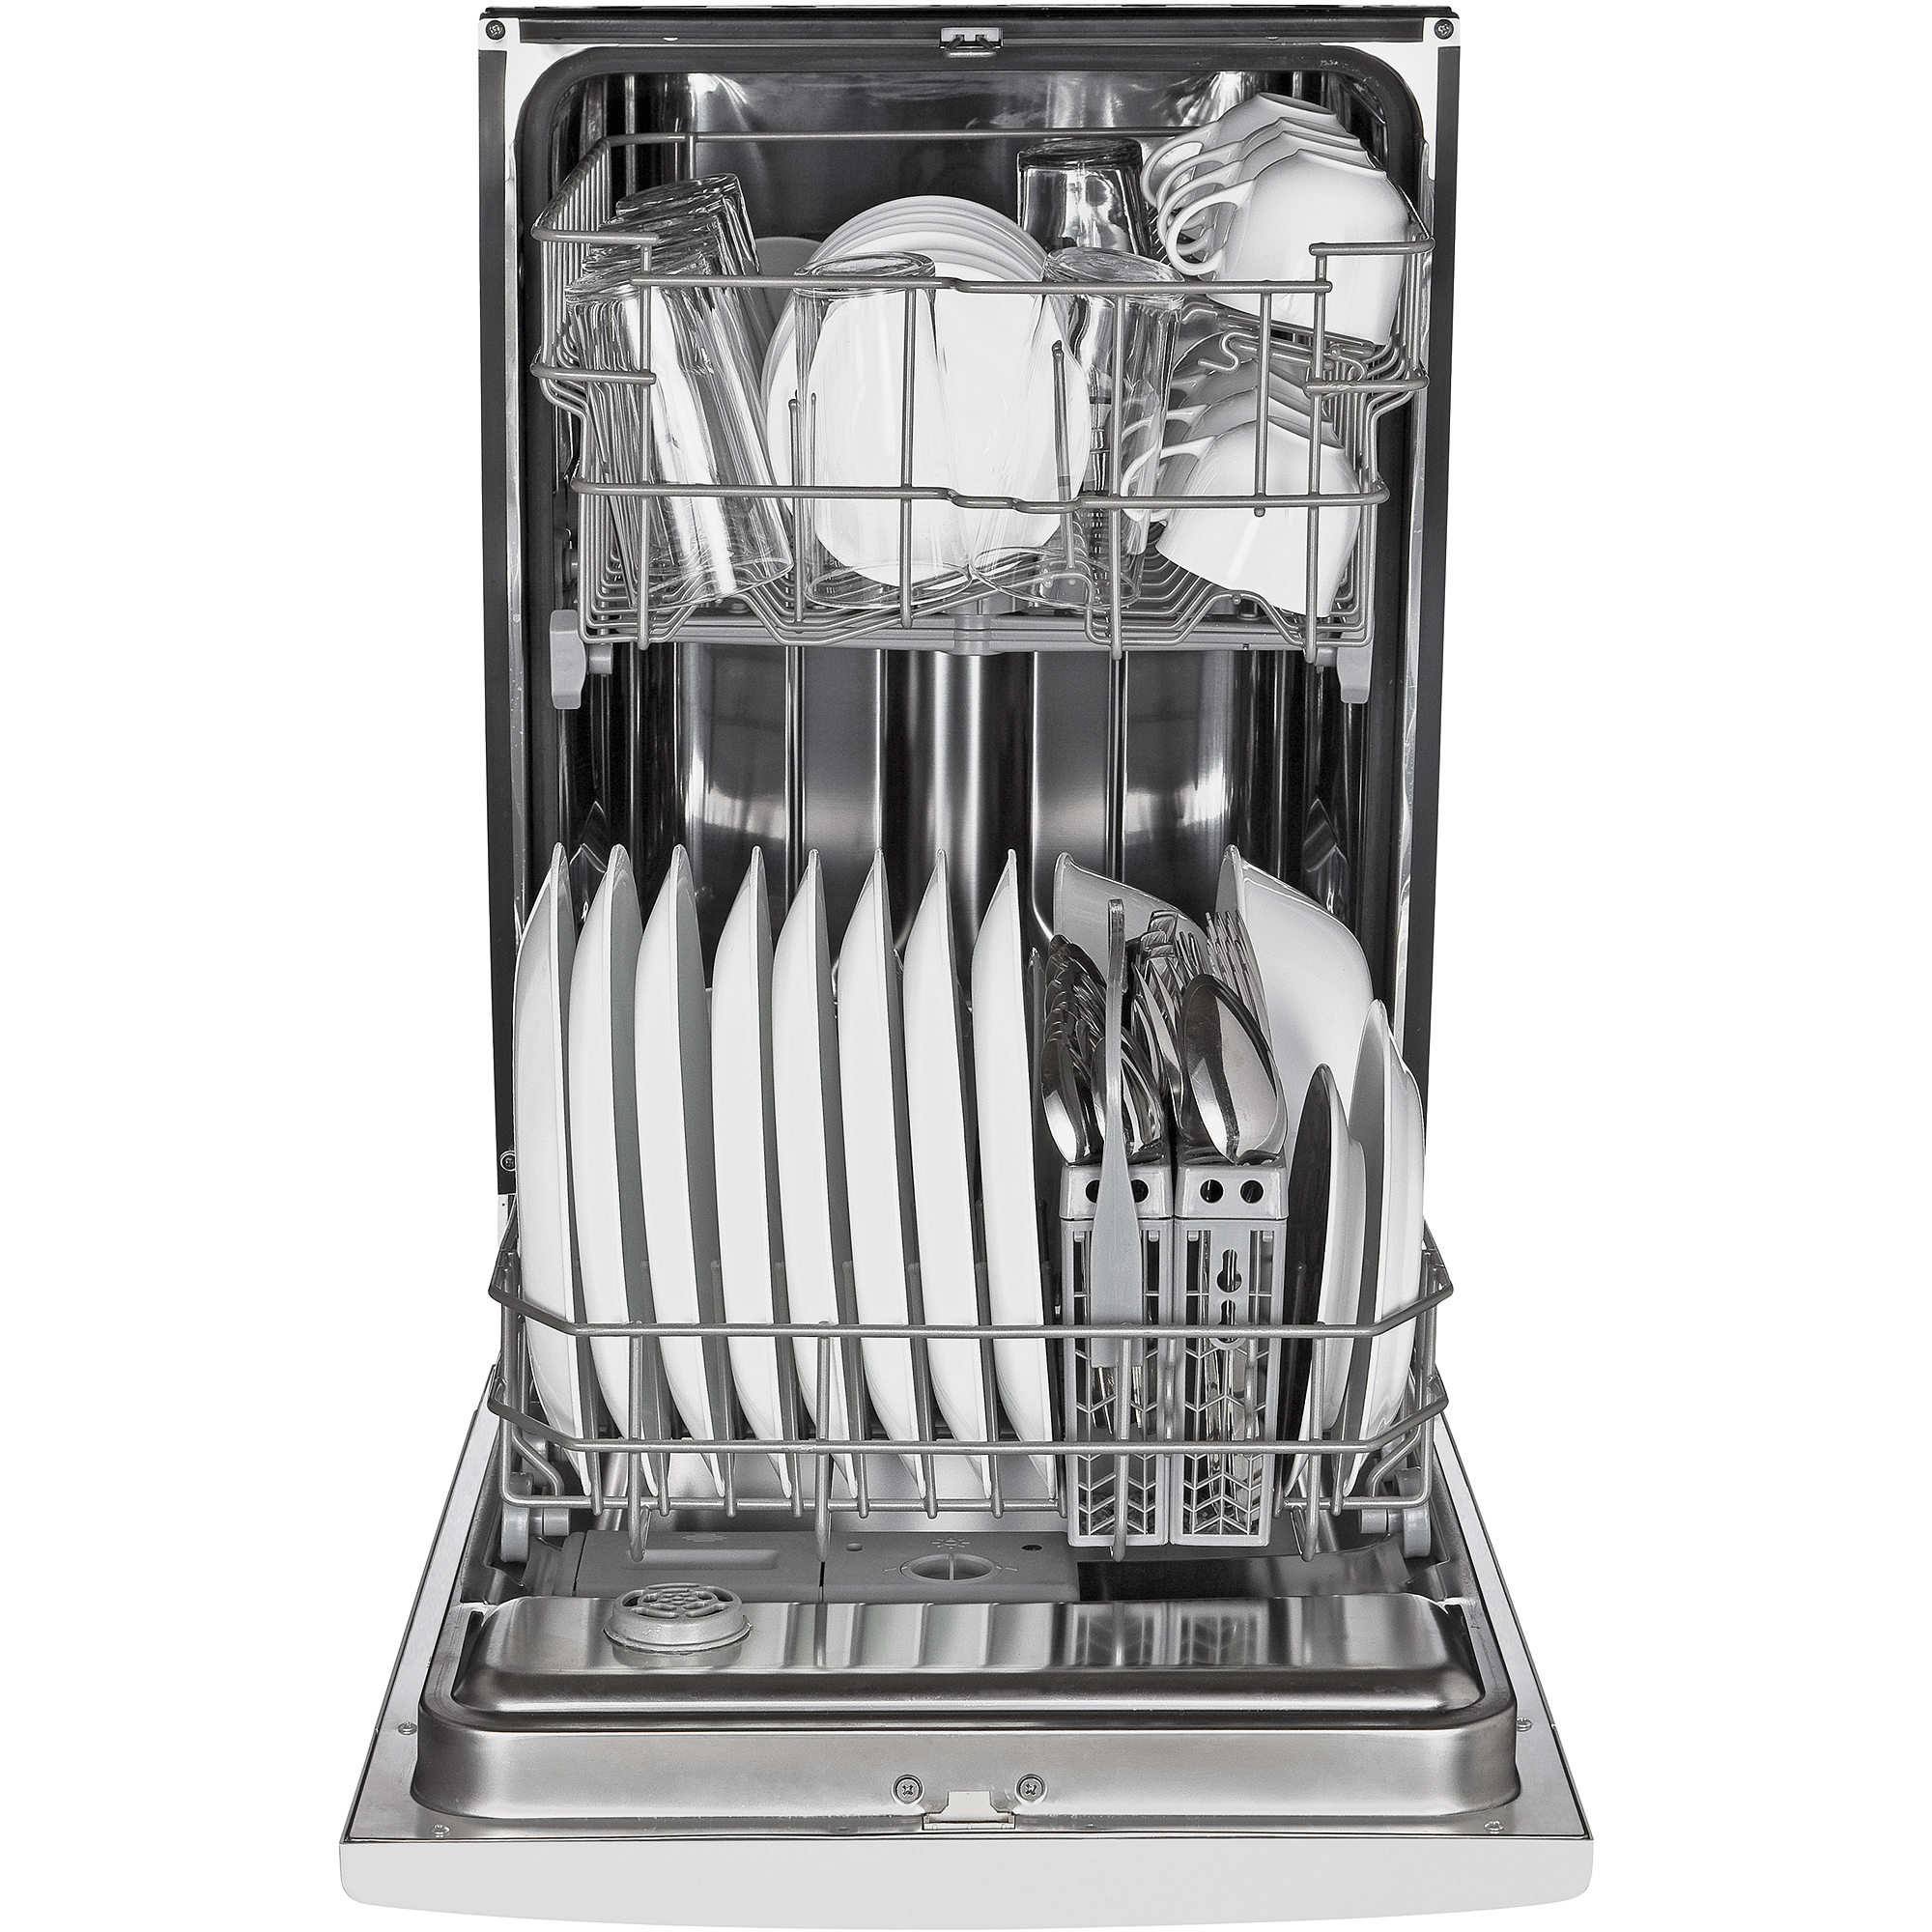 Install A Dishwasher In An Existing Kitchen Cabinet 100